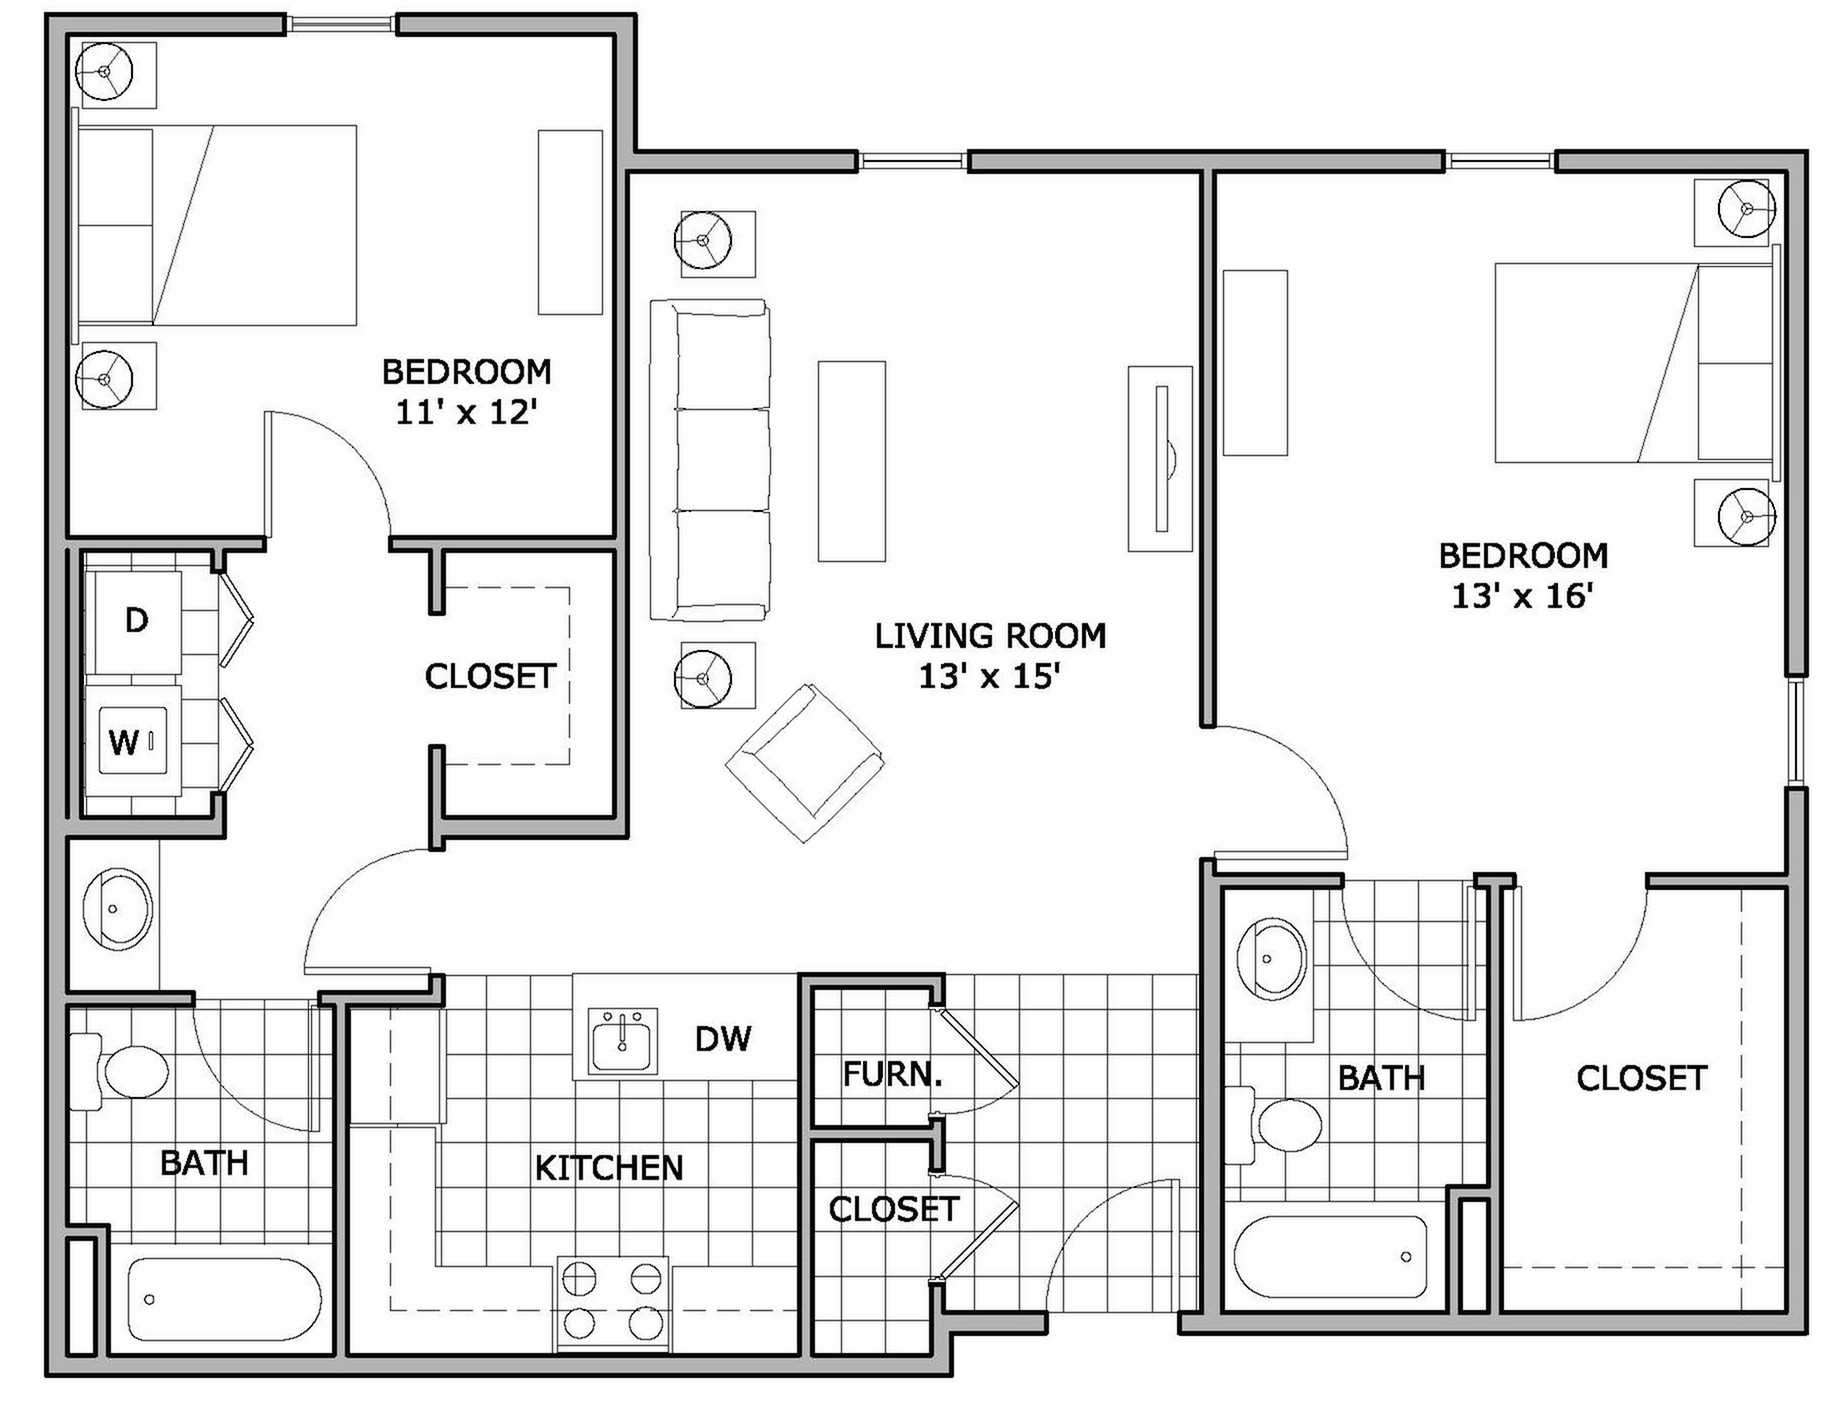 Bedroomed Apartments Floor Plans Latest Bestapartment